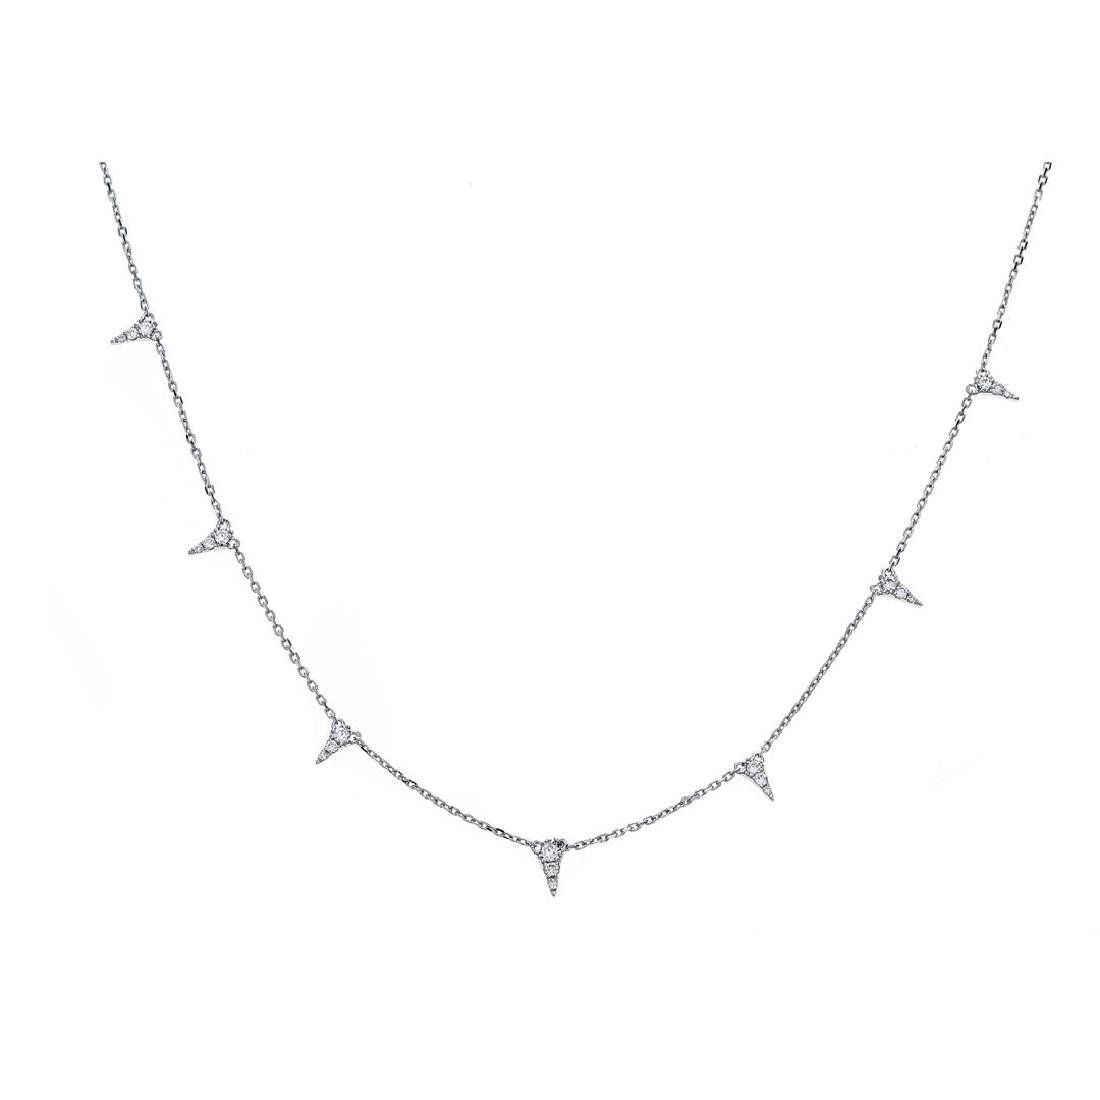 0.31 ctw Diamond Necklace - 18KT White Gold - 2